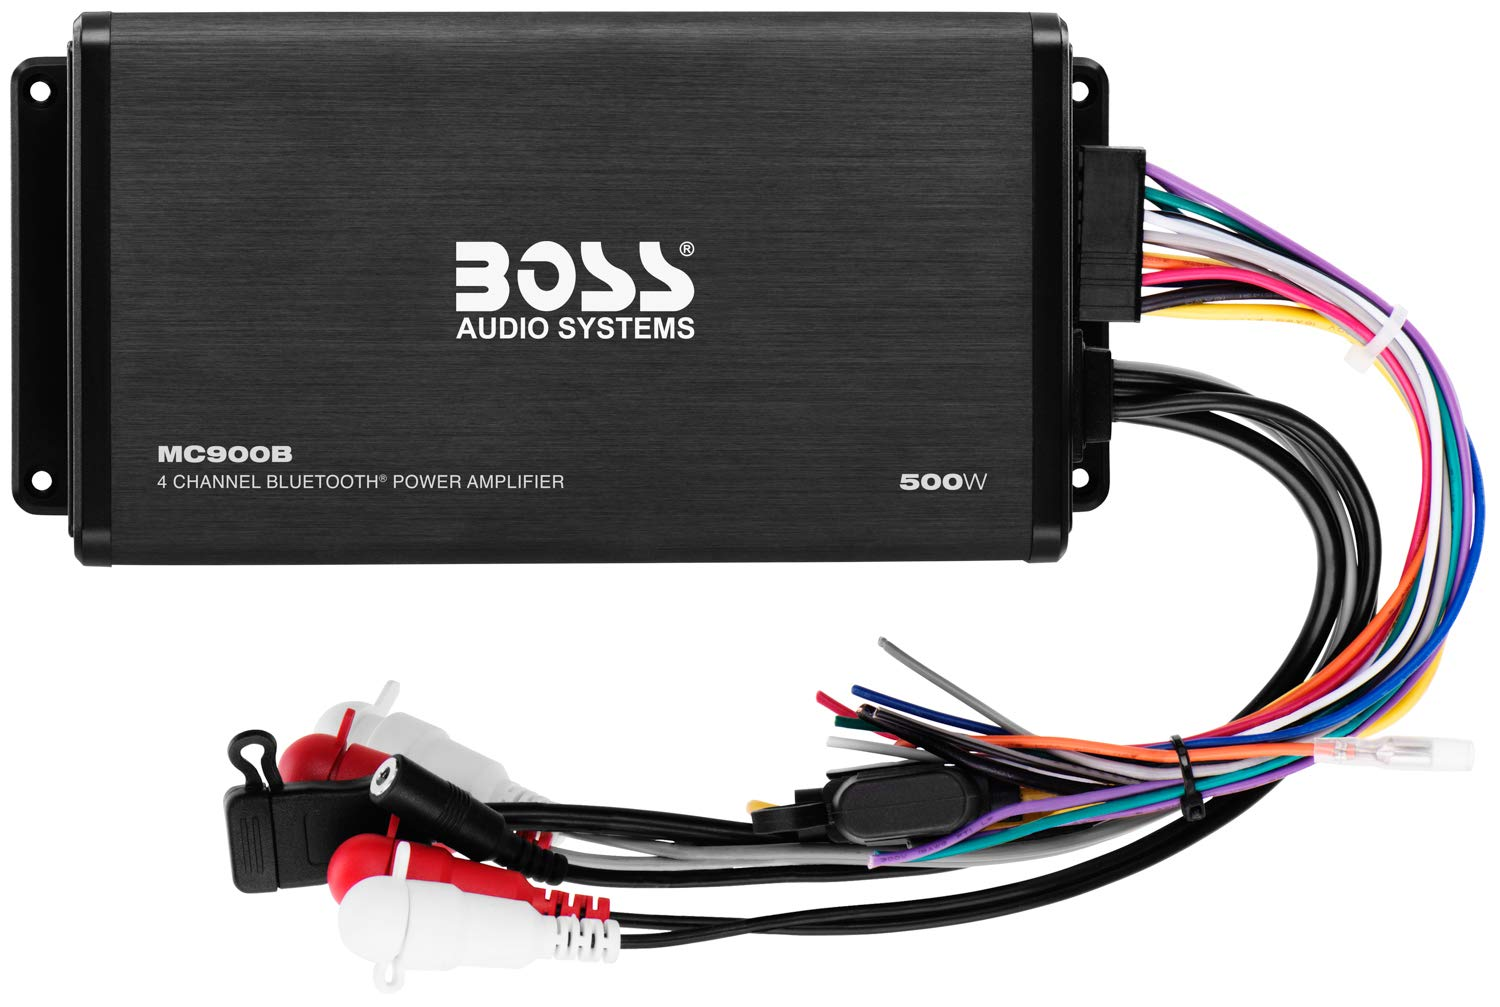 Boss Audio Mc900b 500 Watt 4 Channel All Terrain Wiring Diagram For Marine Stereo Weather Resistant Amplifier System With Bluetooth Multifunction Remote Car Electronics